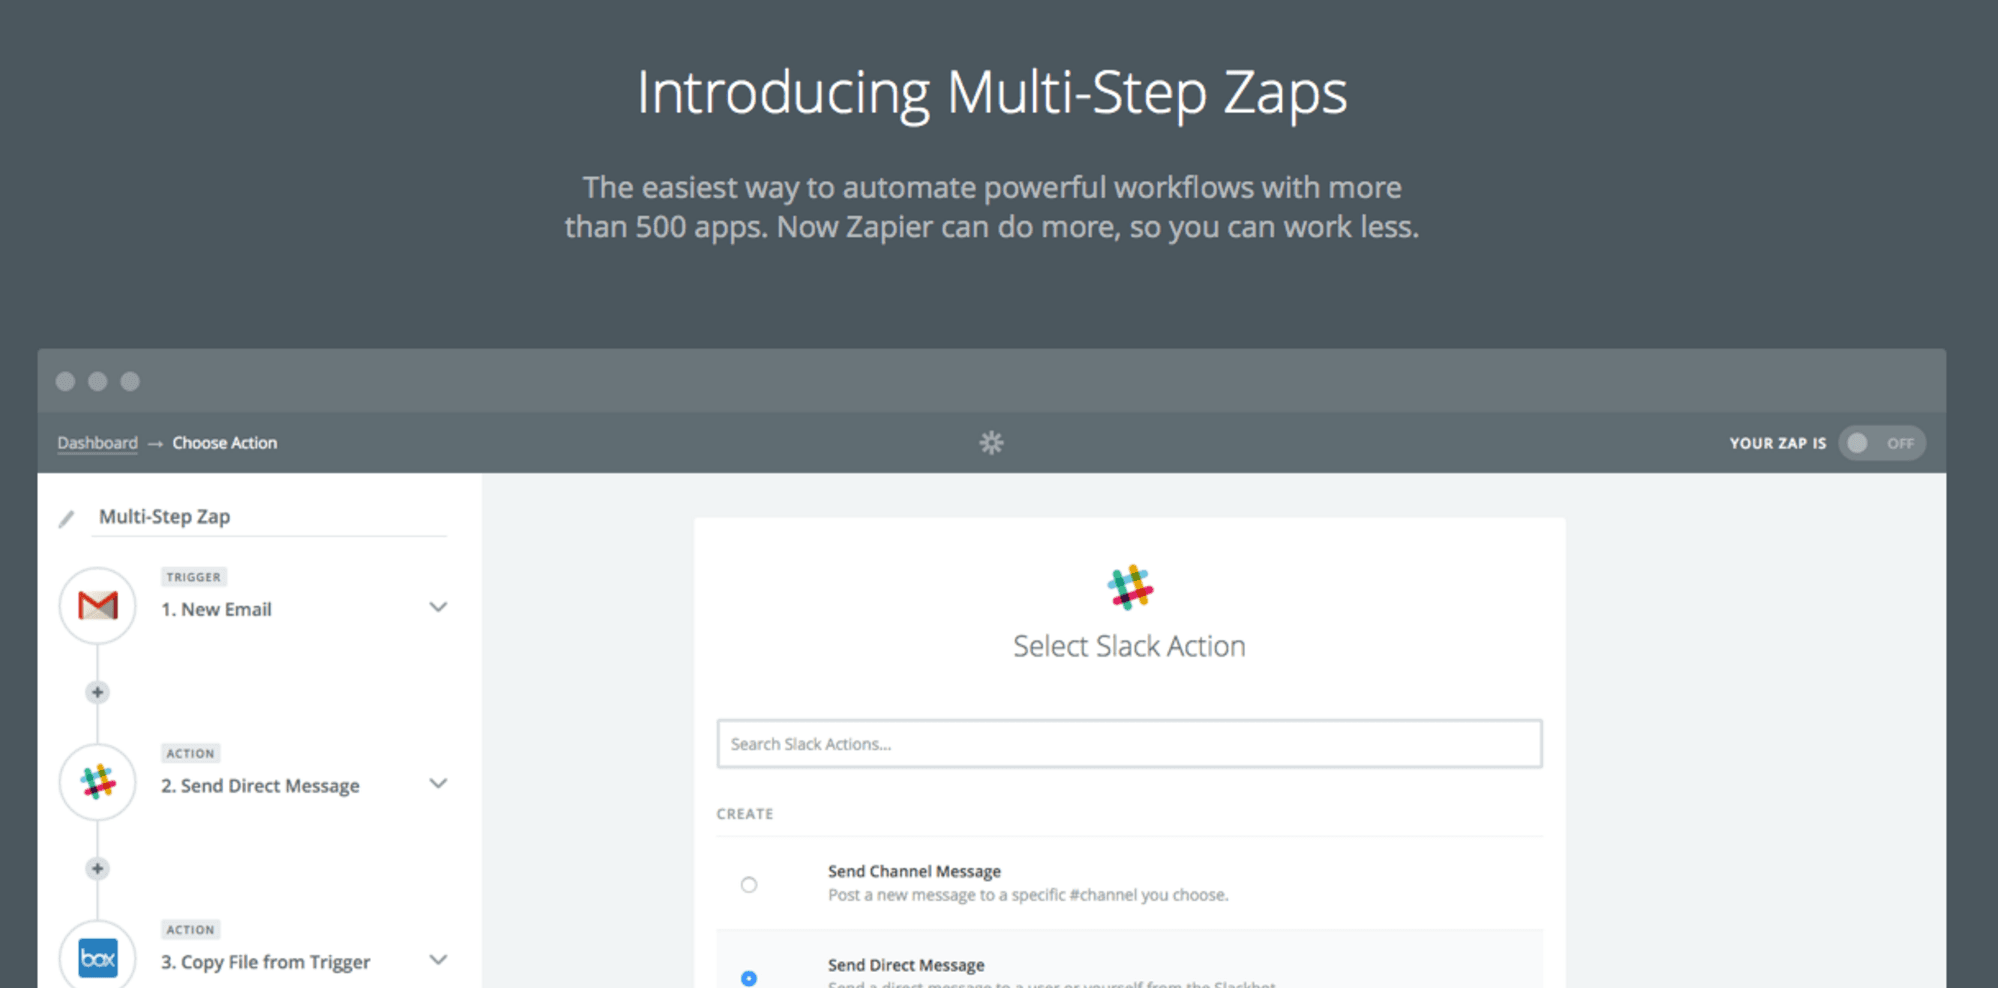 Zapier's new multi-step Zaps can handle your tricky tasks